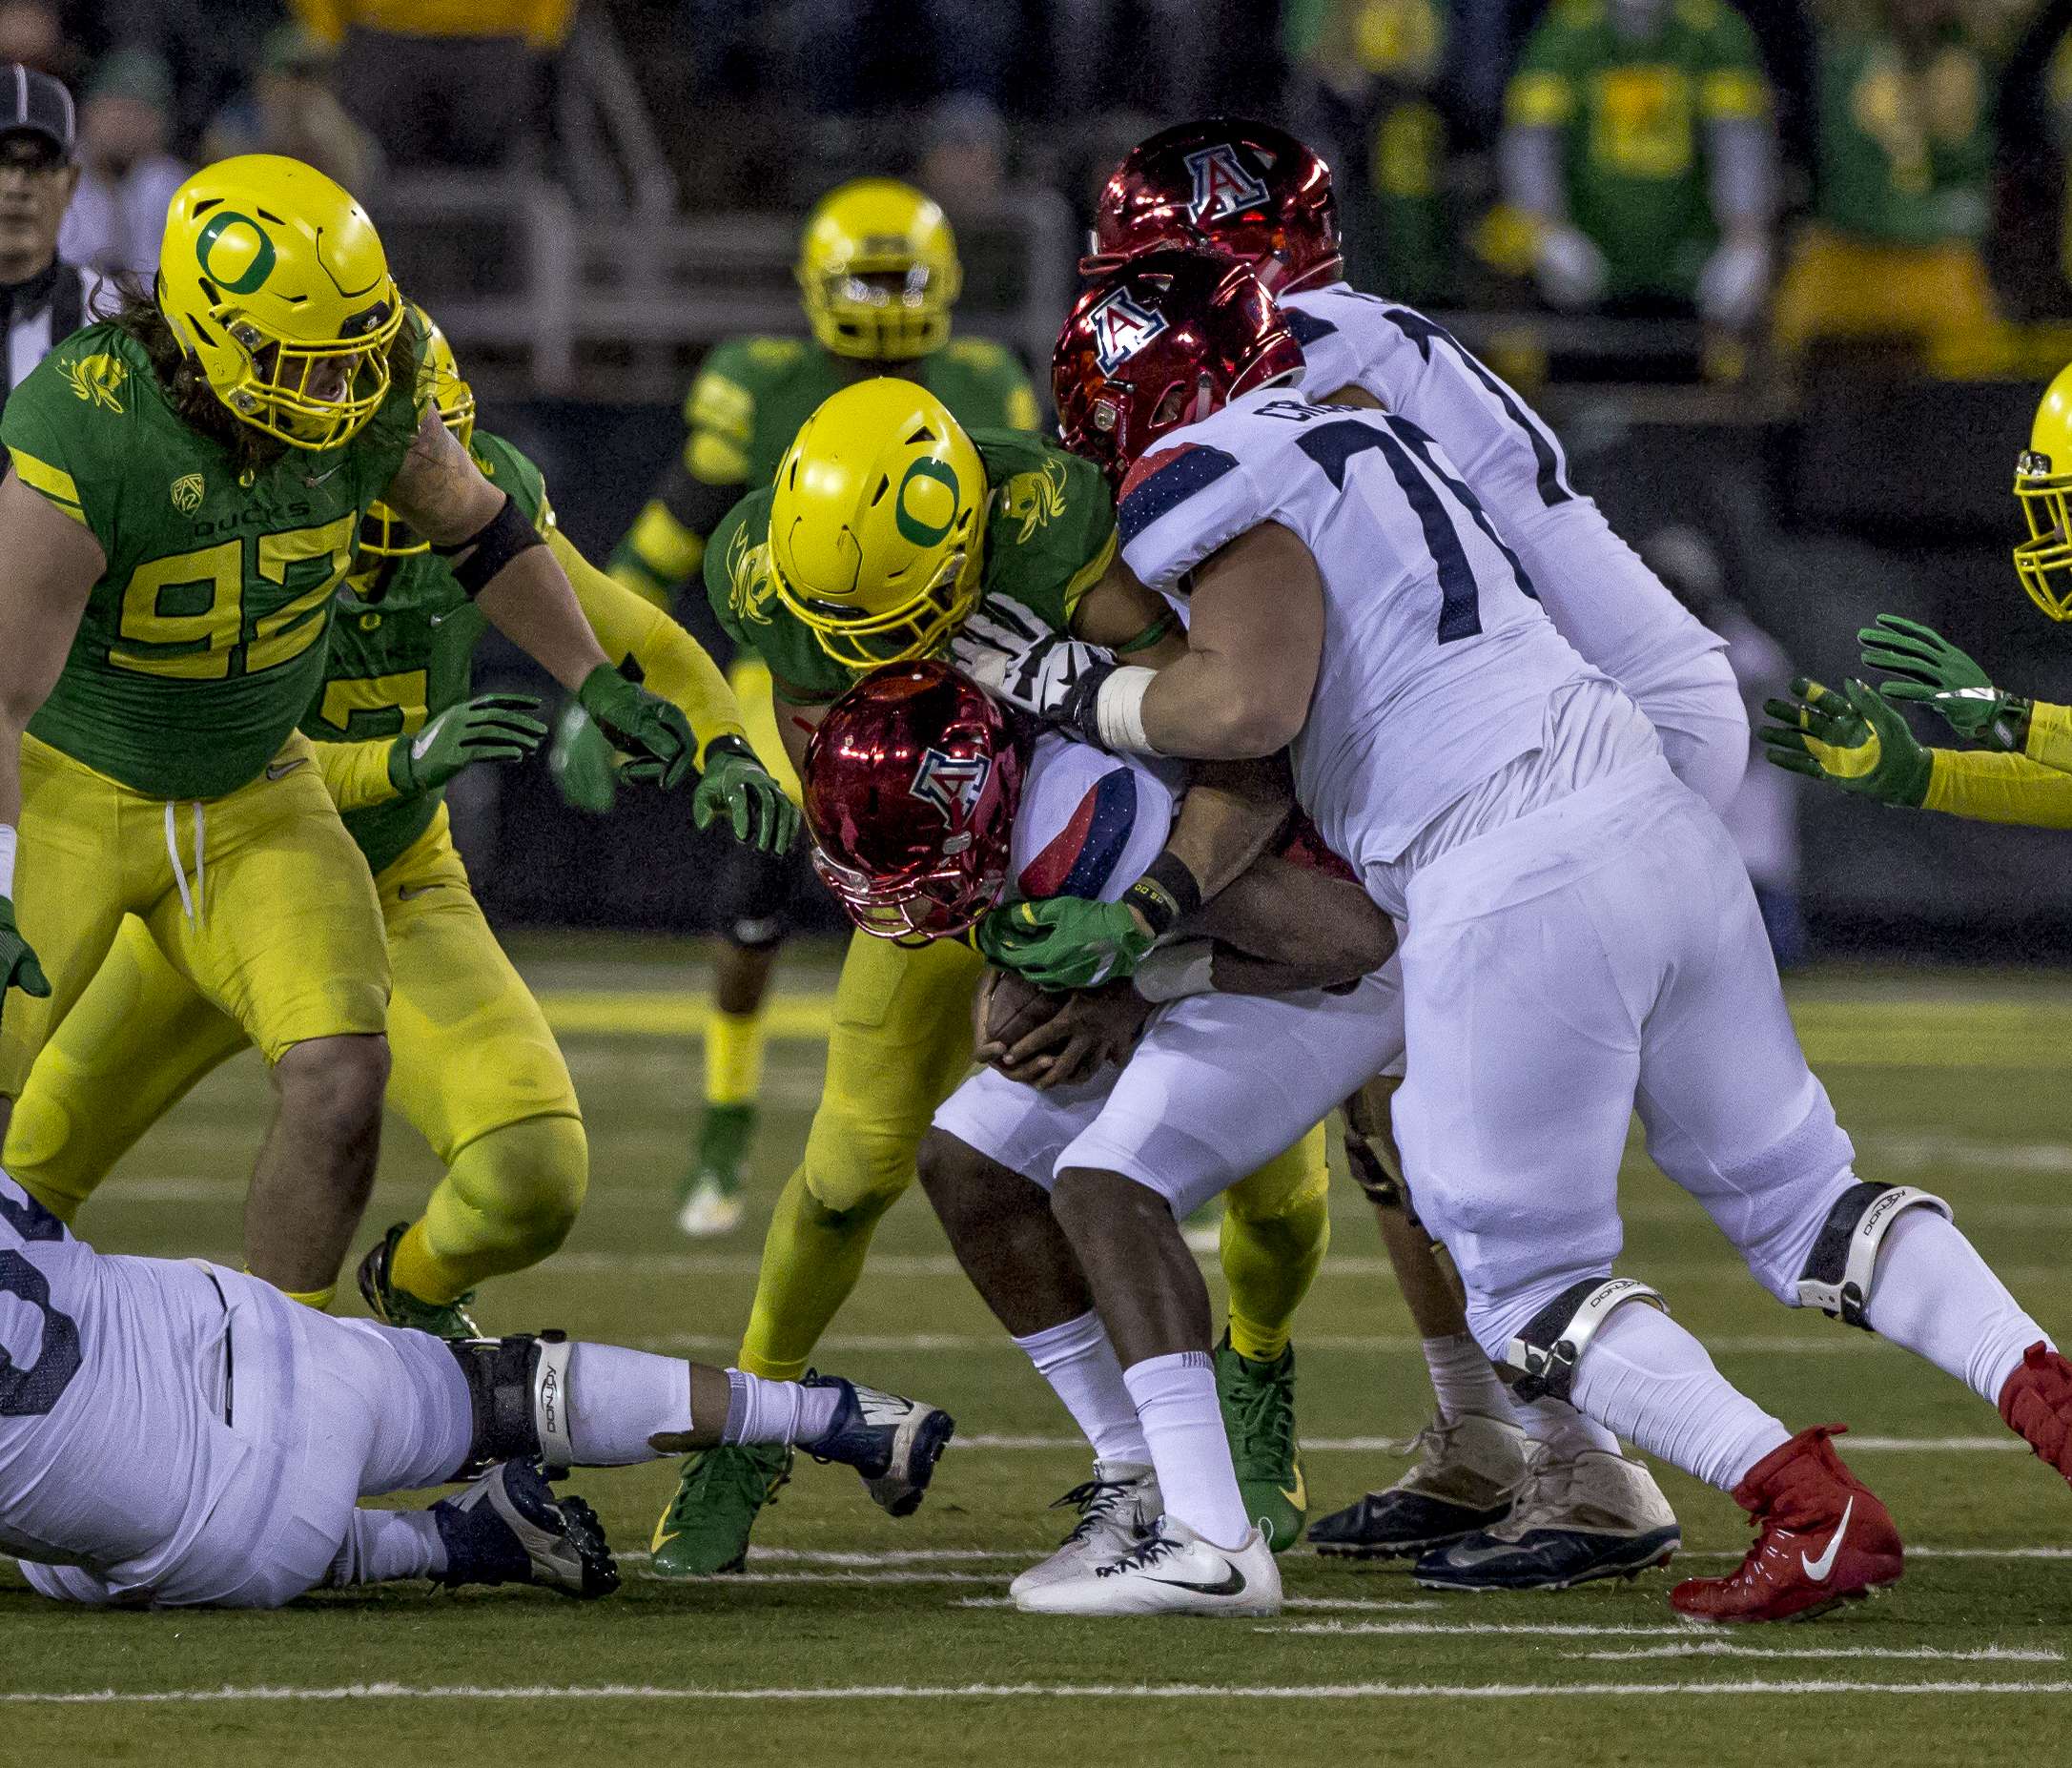 A pack of Oregon defenders take down an Arizona ball carrier. The Oregon Ducks defeated the Arizona Wildcats 48 to 28 during a chilly evening game at Autzen Stadium on November 18, 2017. Photo by Ben Lonergan, Oregon News Lab